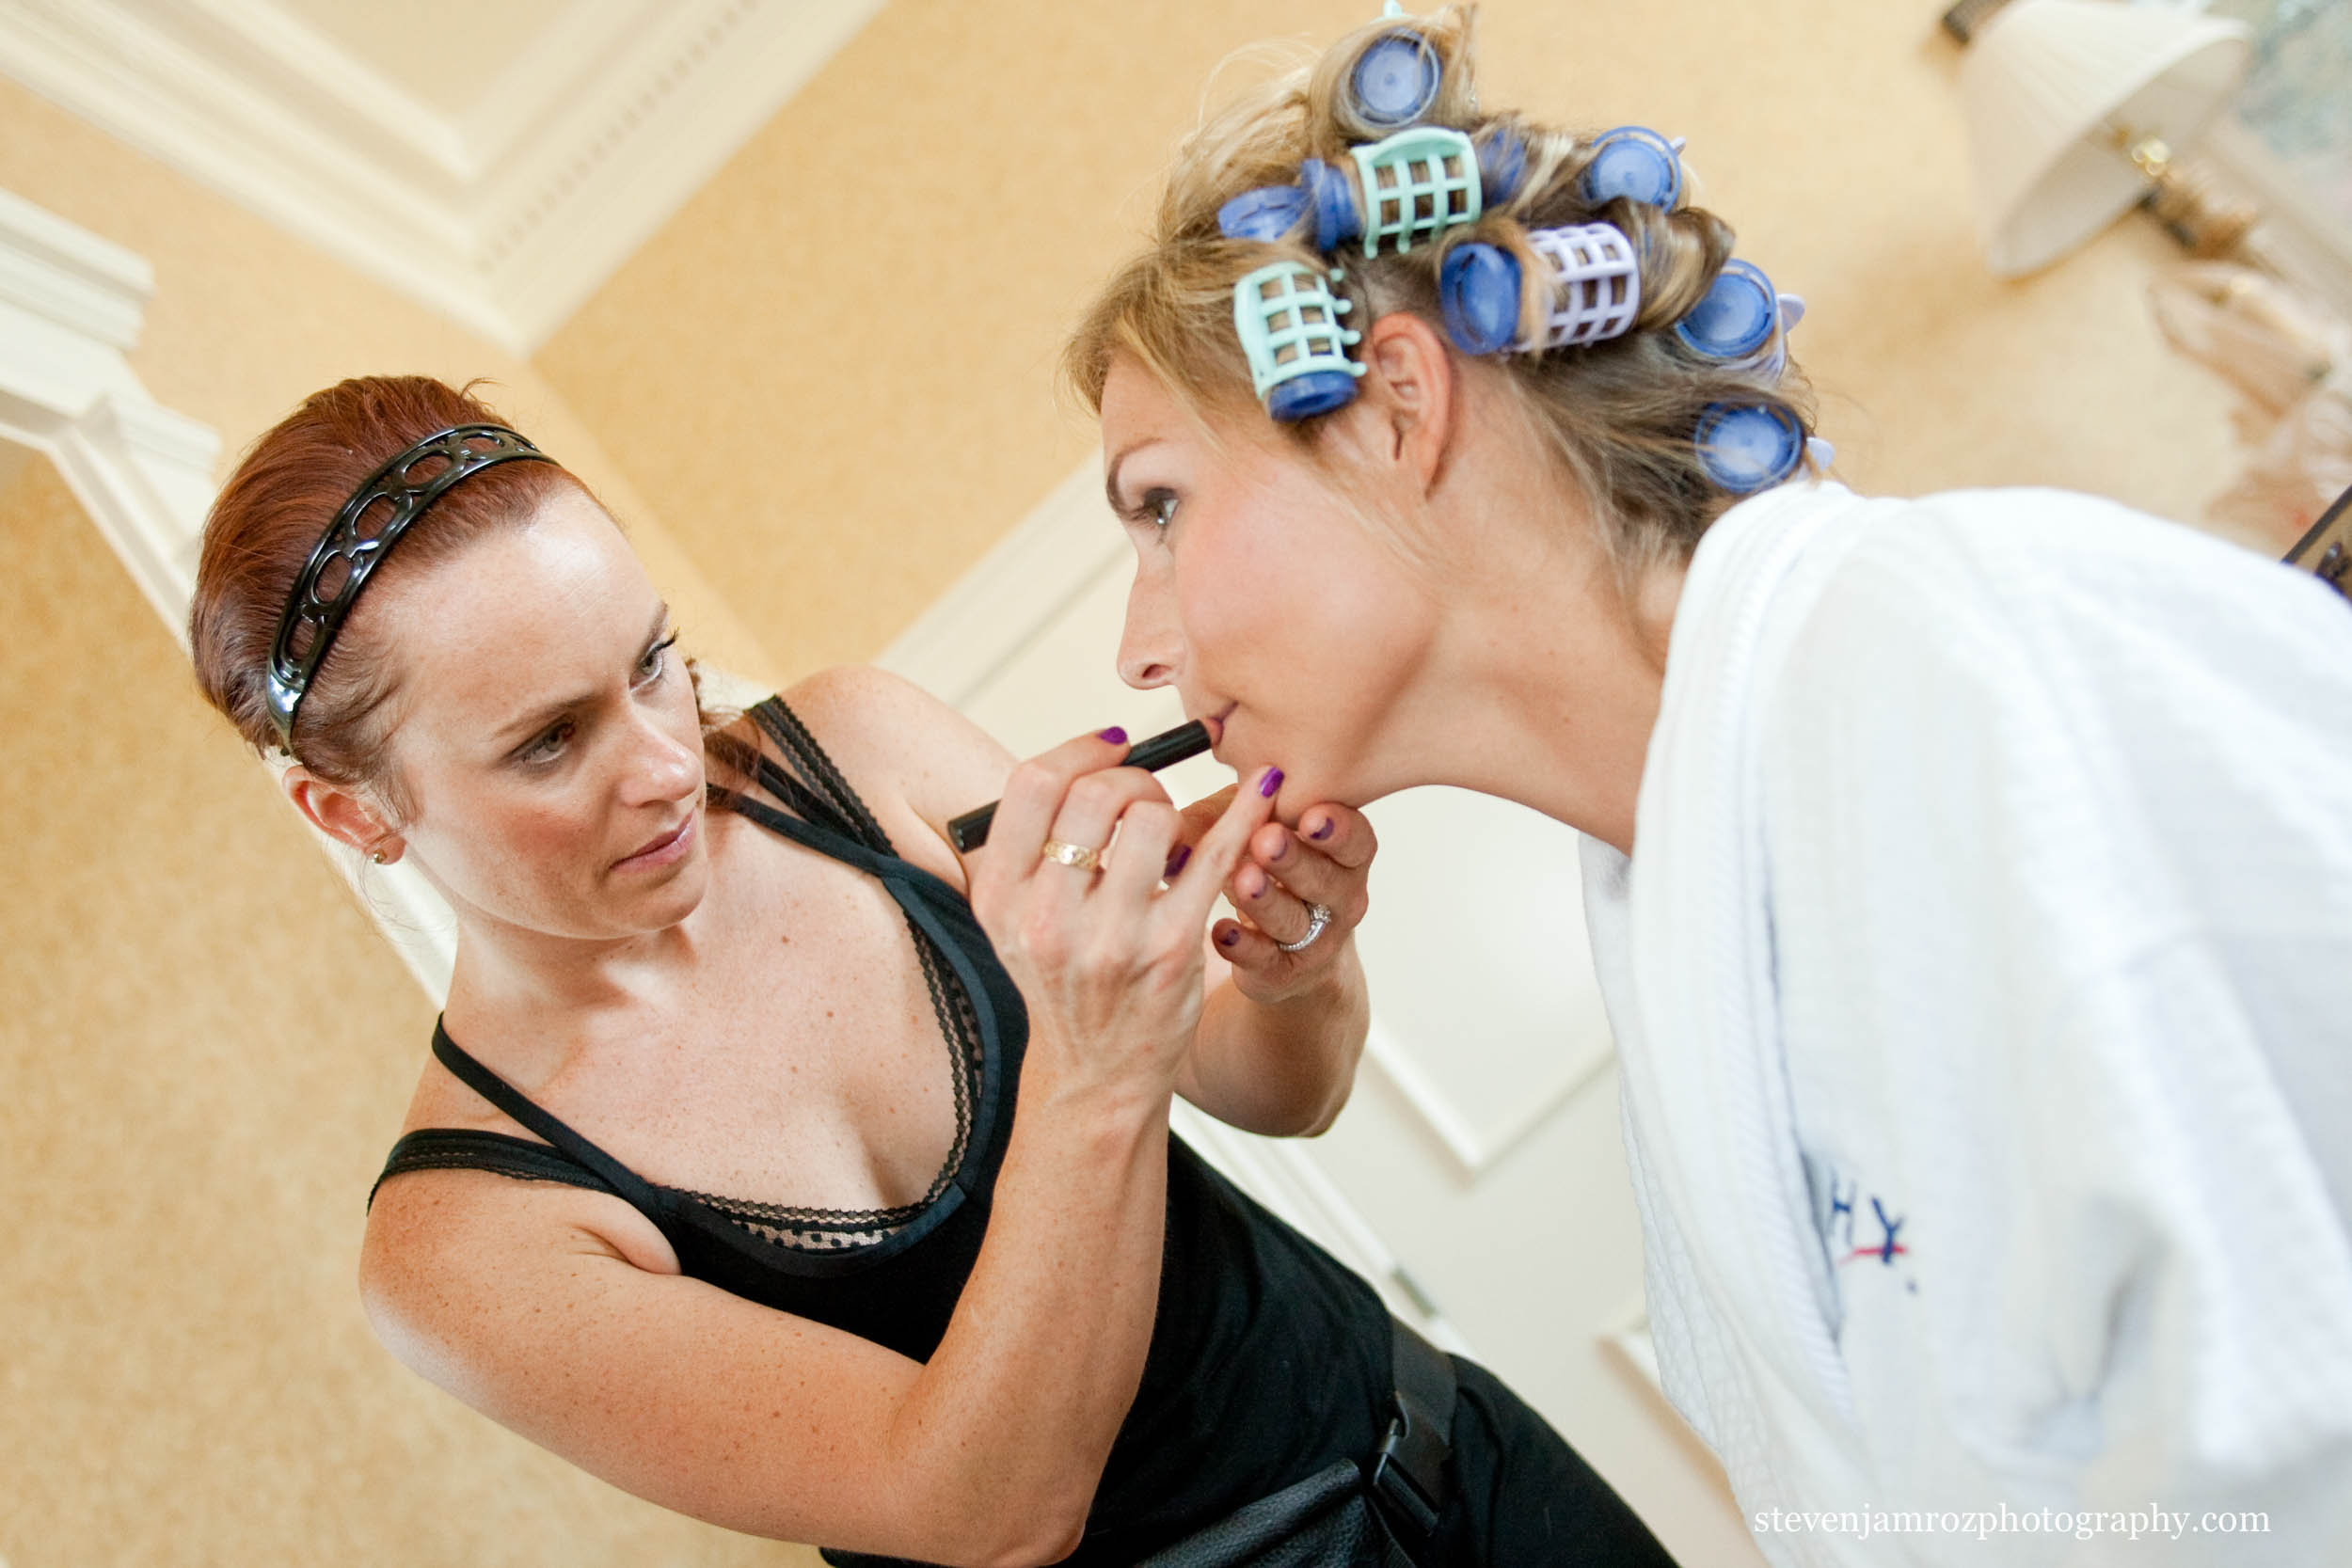 hair-and-makeup-raleigh-wedding-photographer-0800.jpg